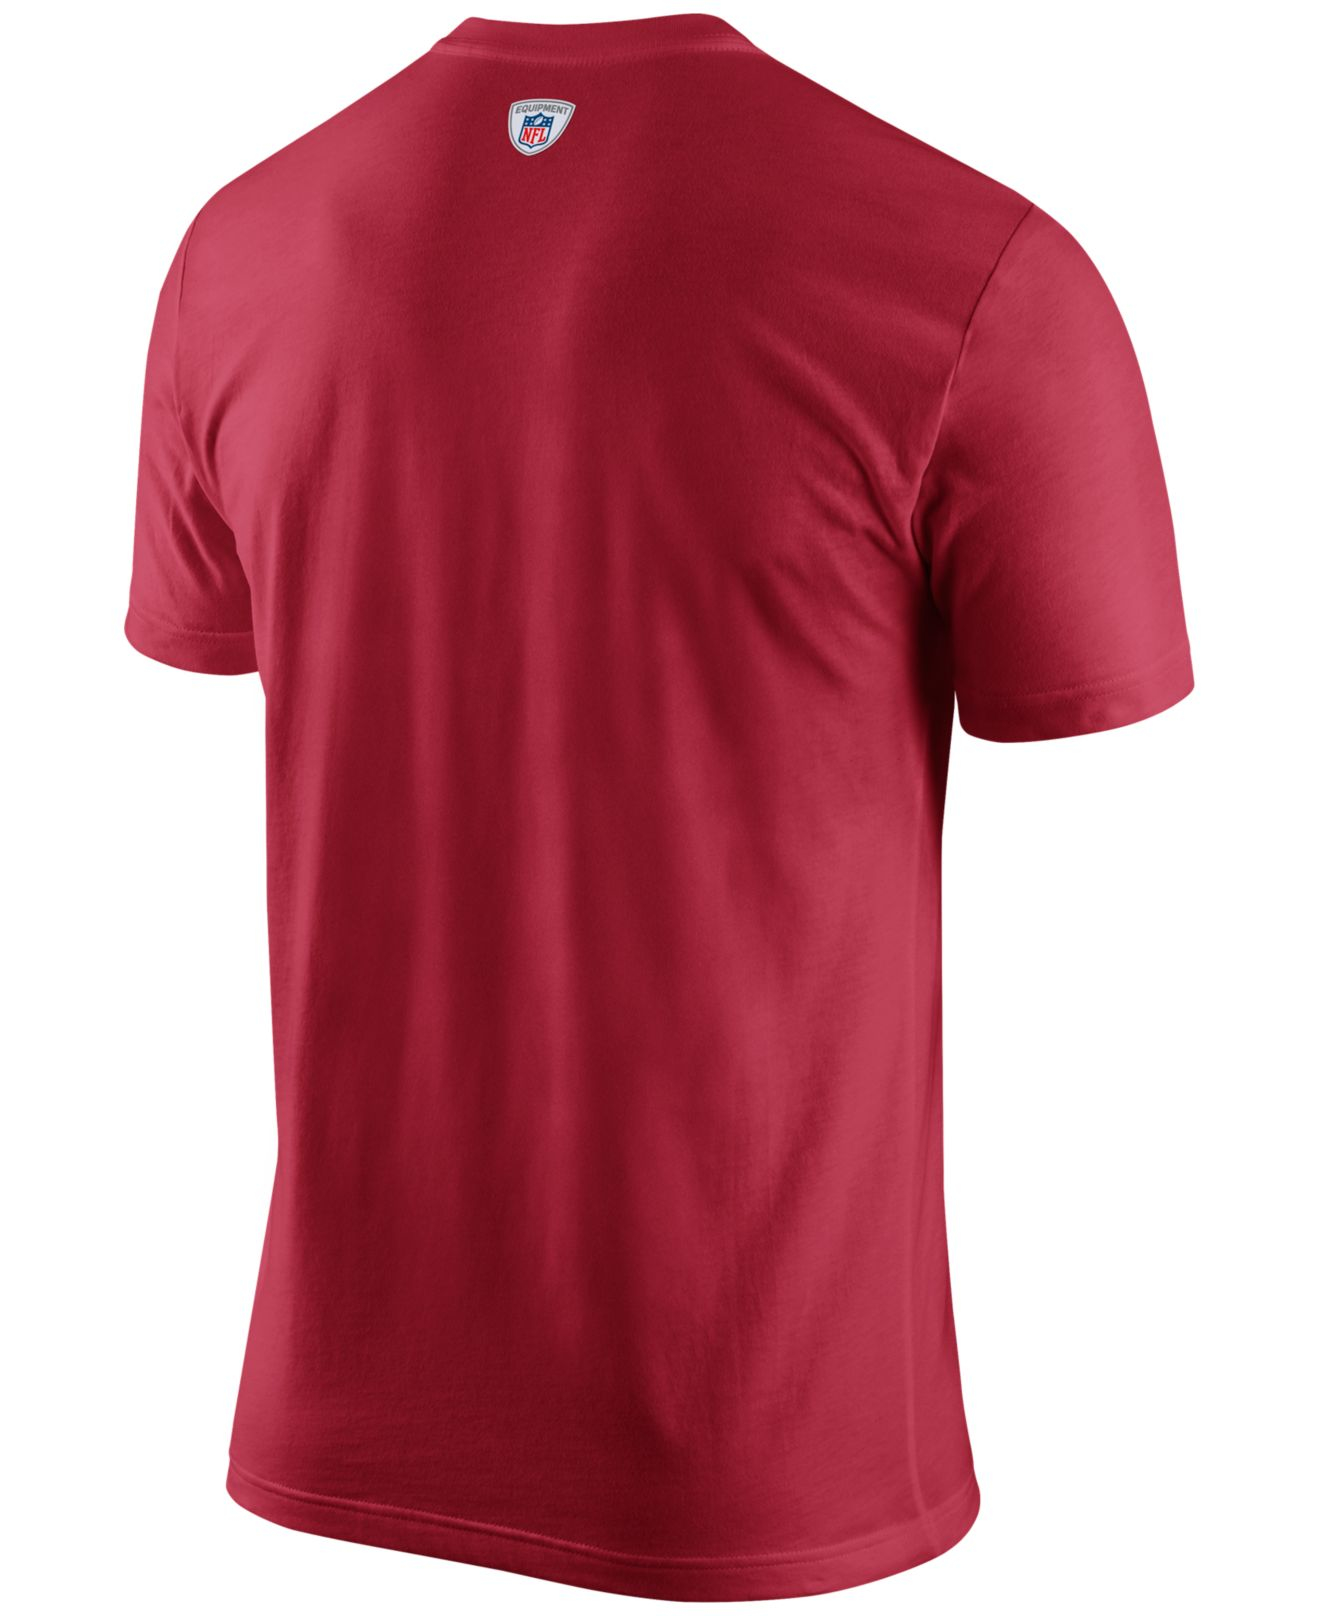 9d9ae0570 Lyst - Nike Men s San Francisco 49ers Facility T-shirt in Red for Men